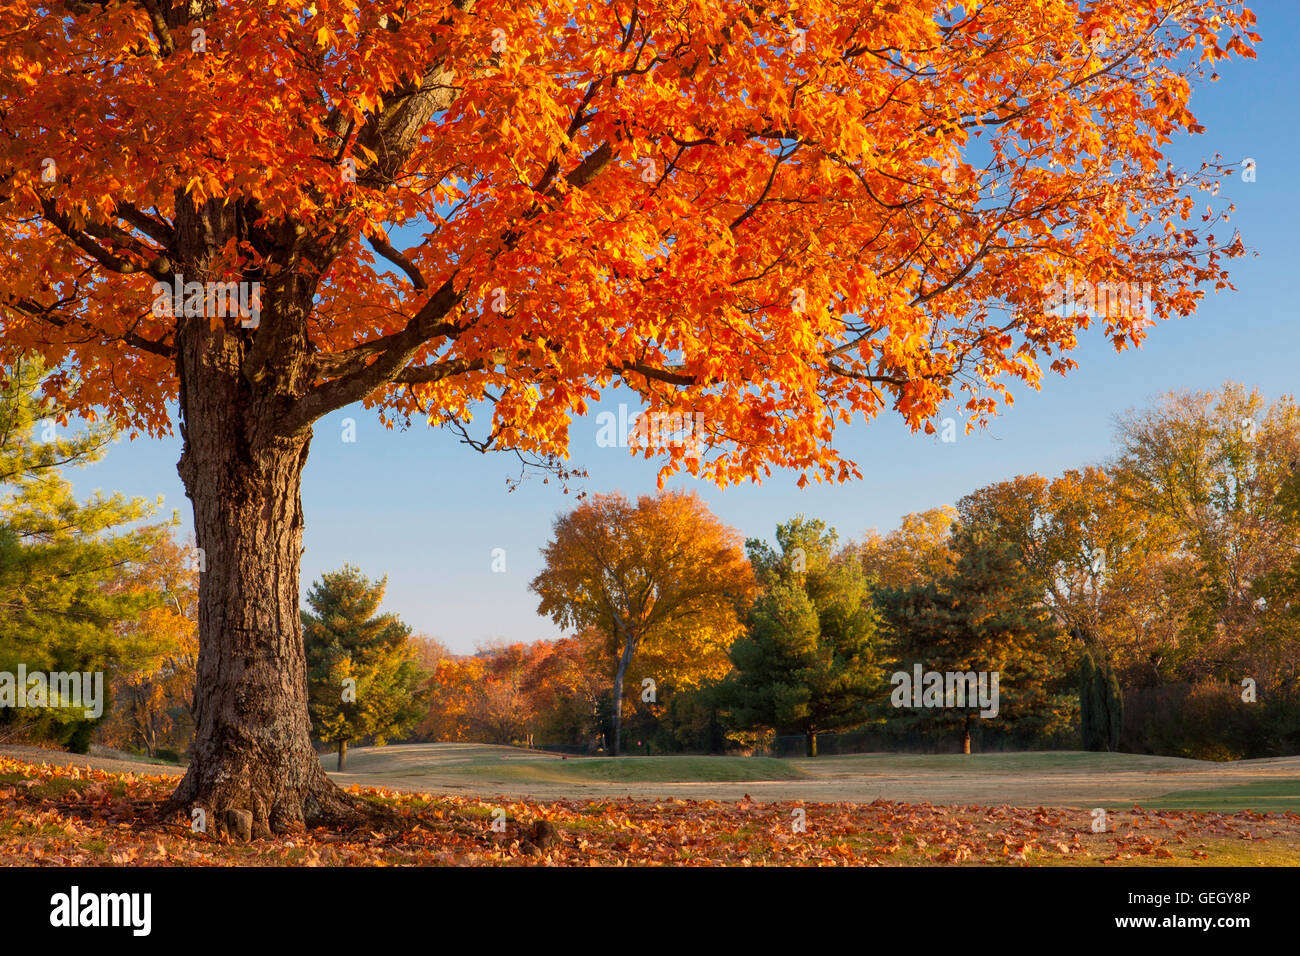 Autumn colors in Brentwood, Tennessee, USA - Stock Image